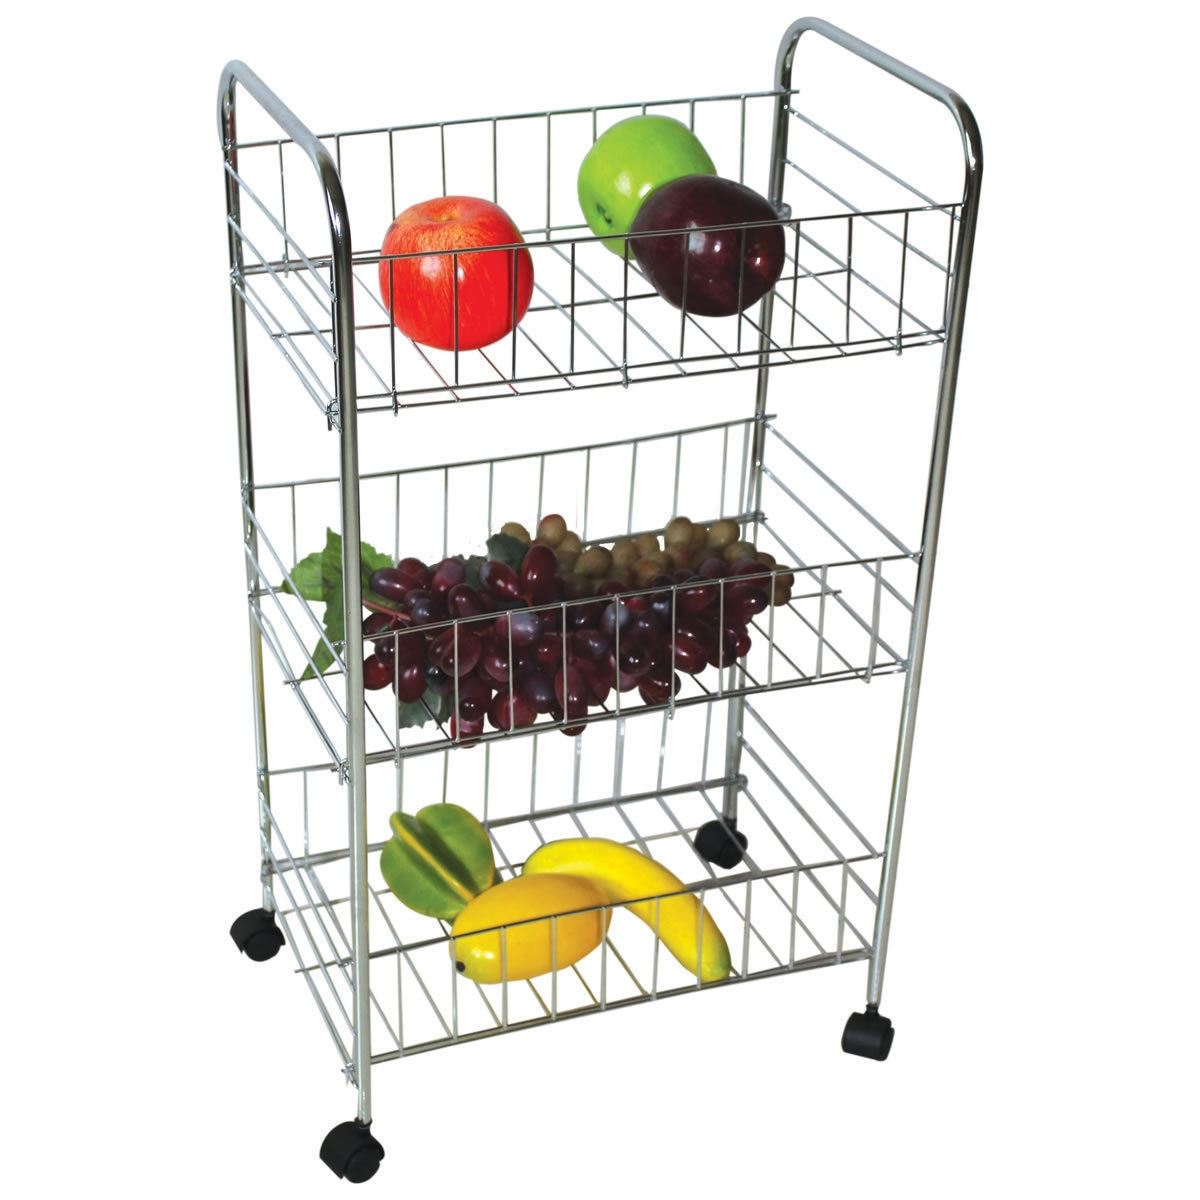 3 Tier Chrome Plated Kitchen Fruit Cart Vegetable Trolly Storage Stand Rack New Ebay